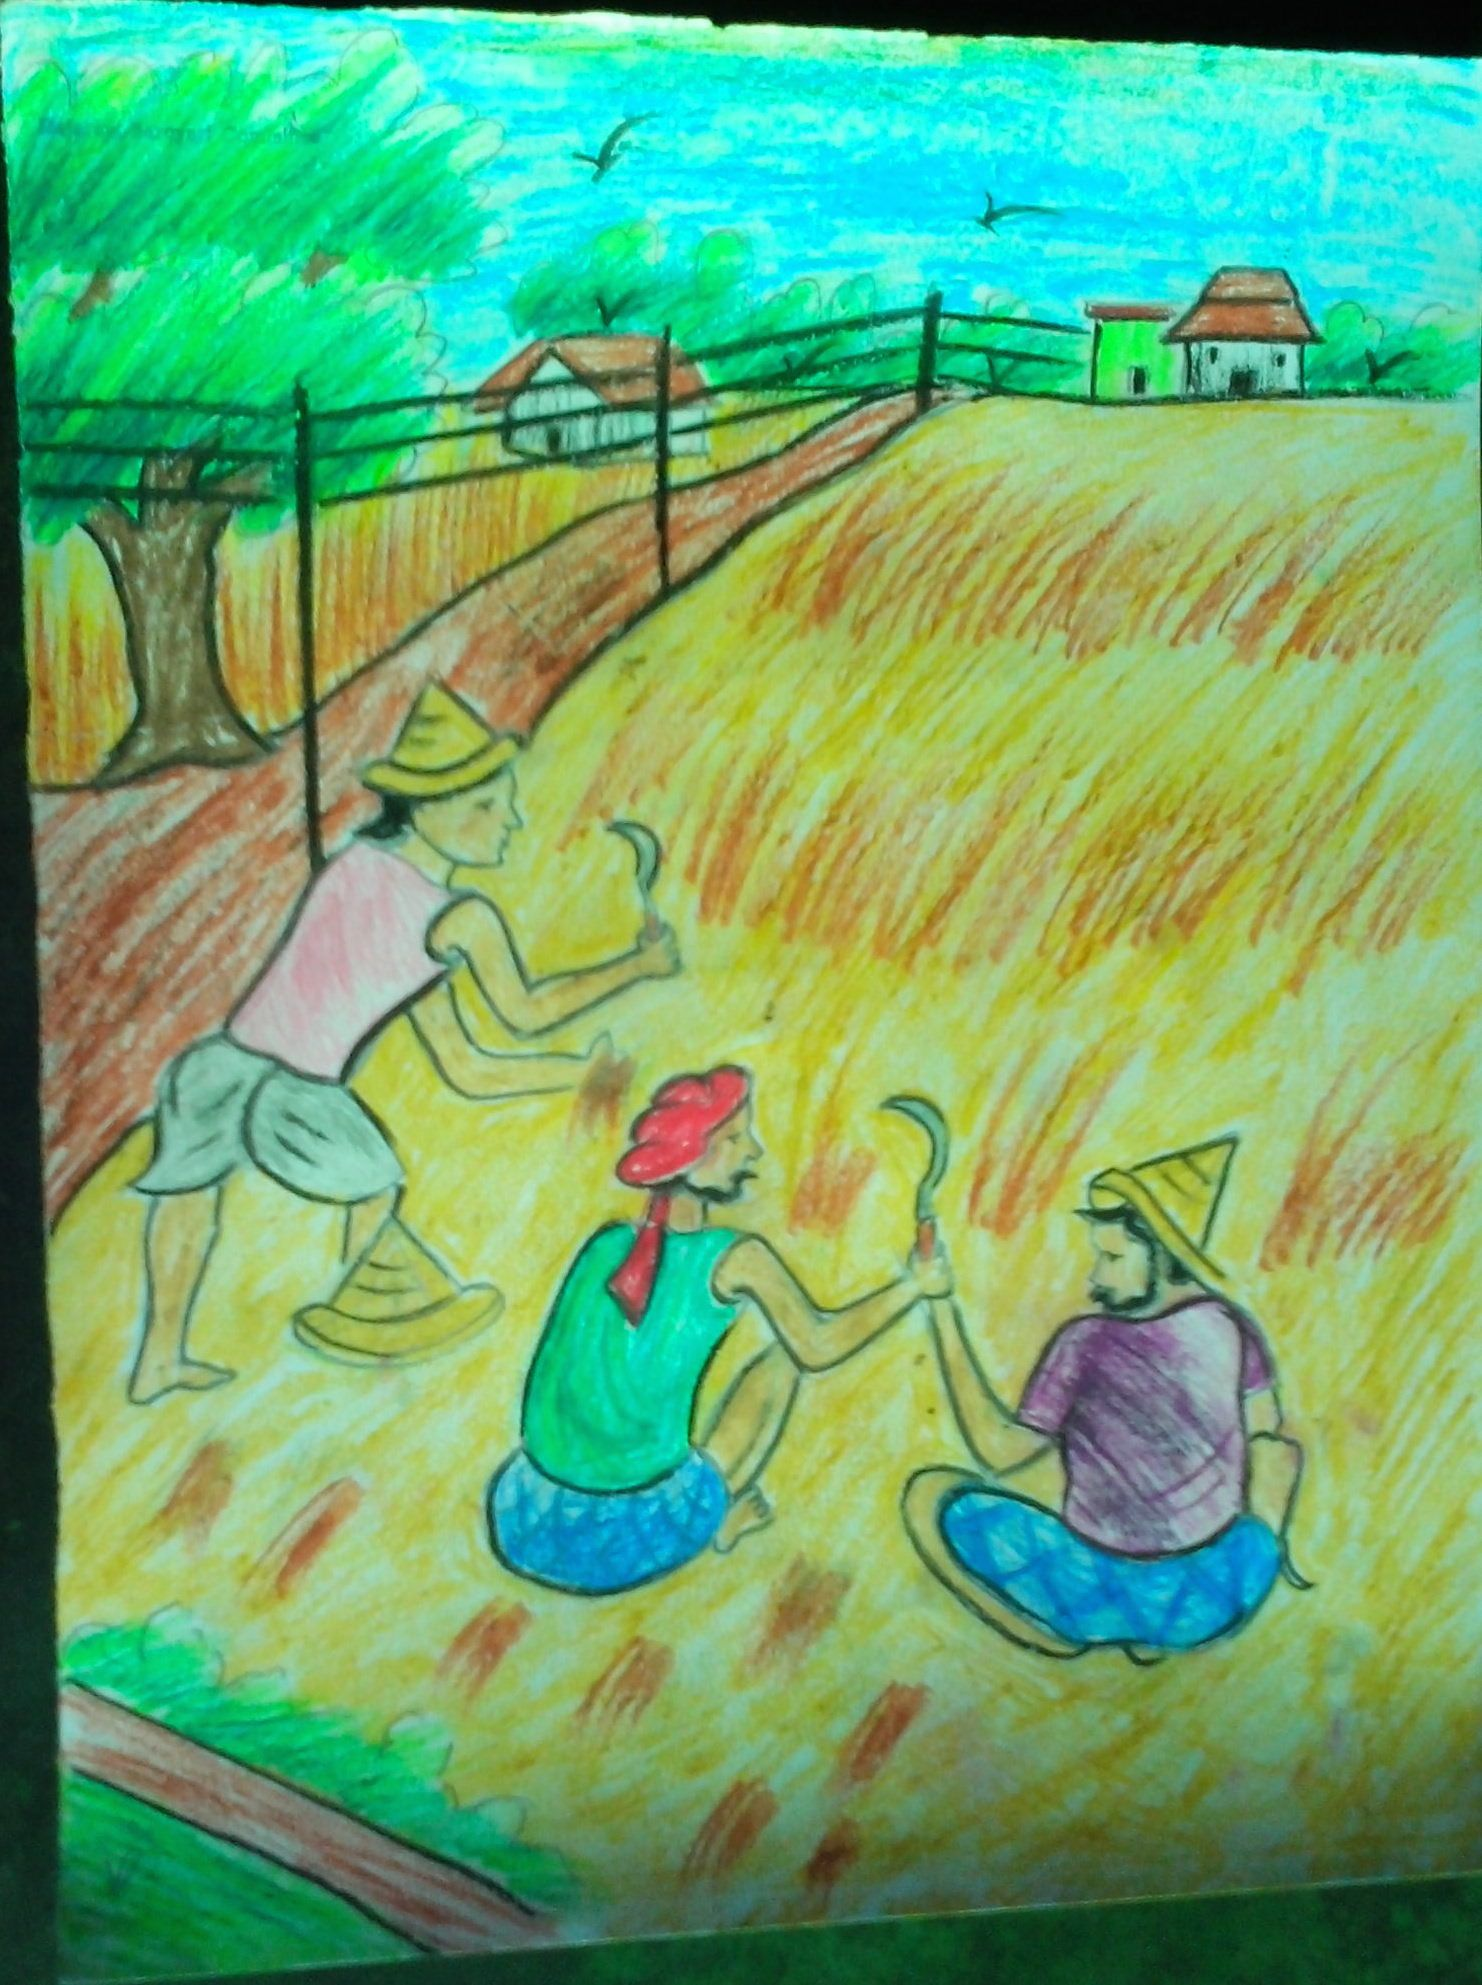 Paddy field farmer painting photo watercolor painting drawings paintings watercolor ink sketch pencil illustration graphicdesign graphics